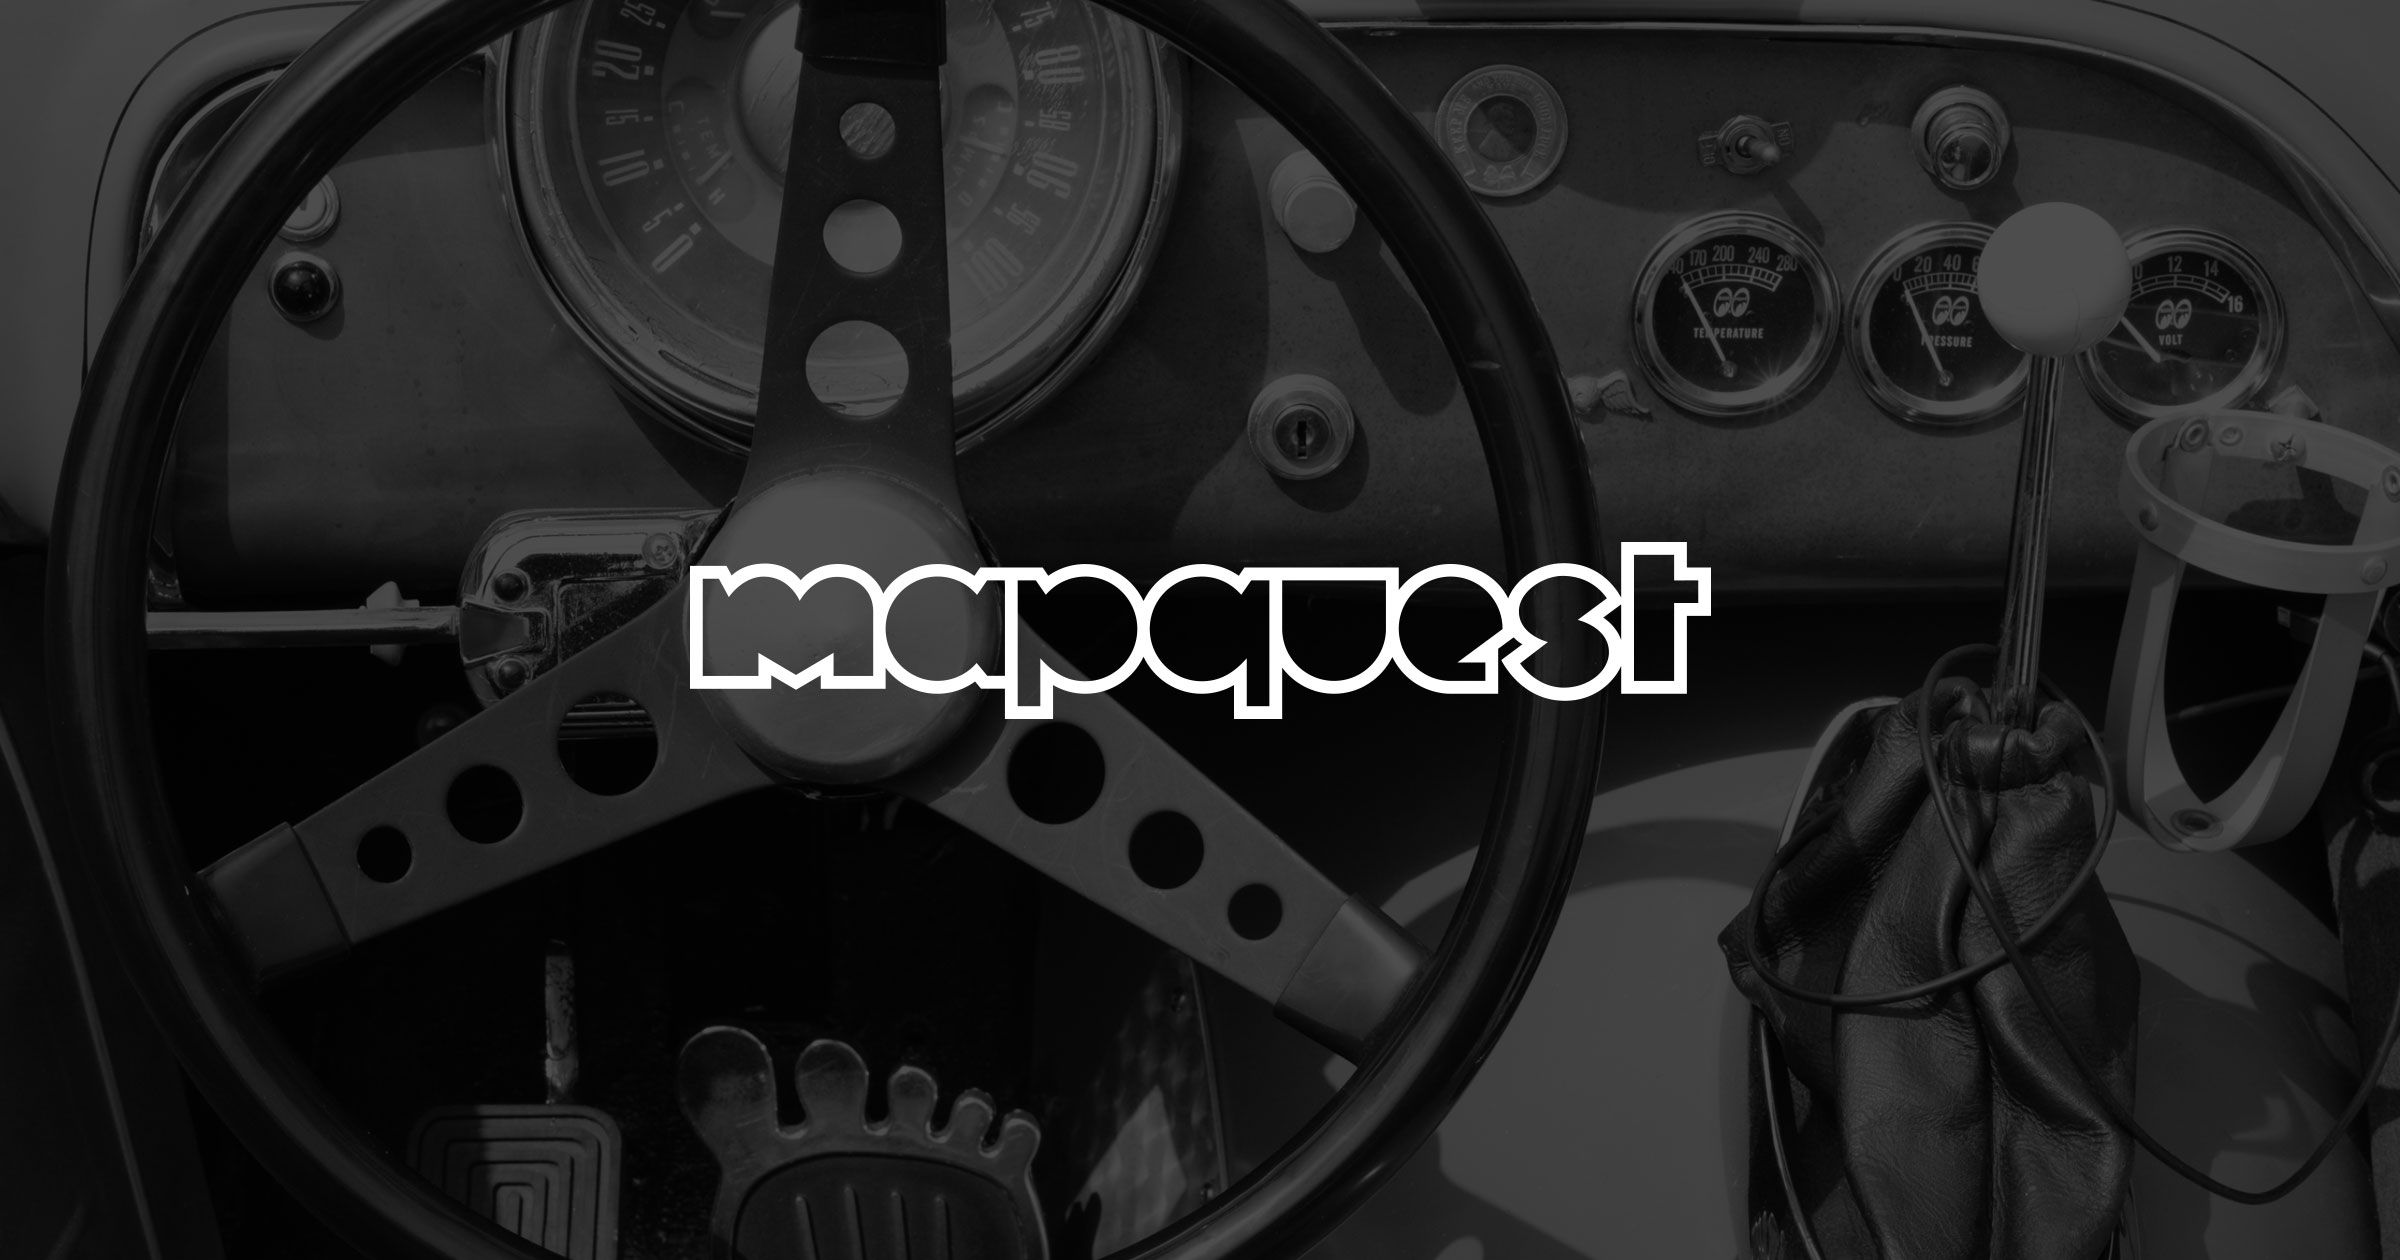 Mapquest has iOS, Android, and Windows phone apps for your